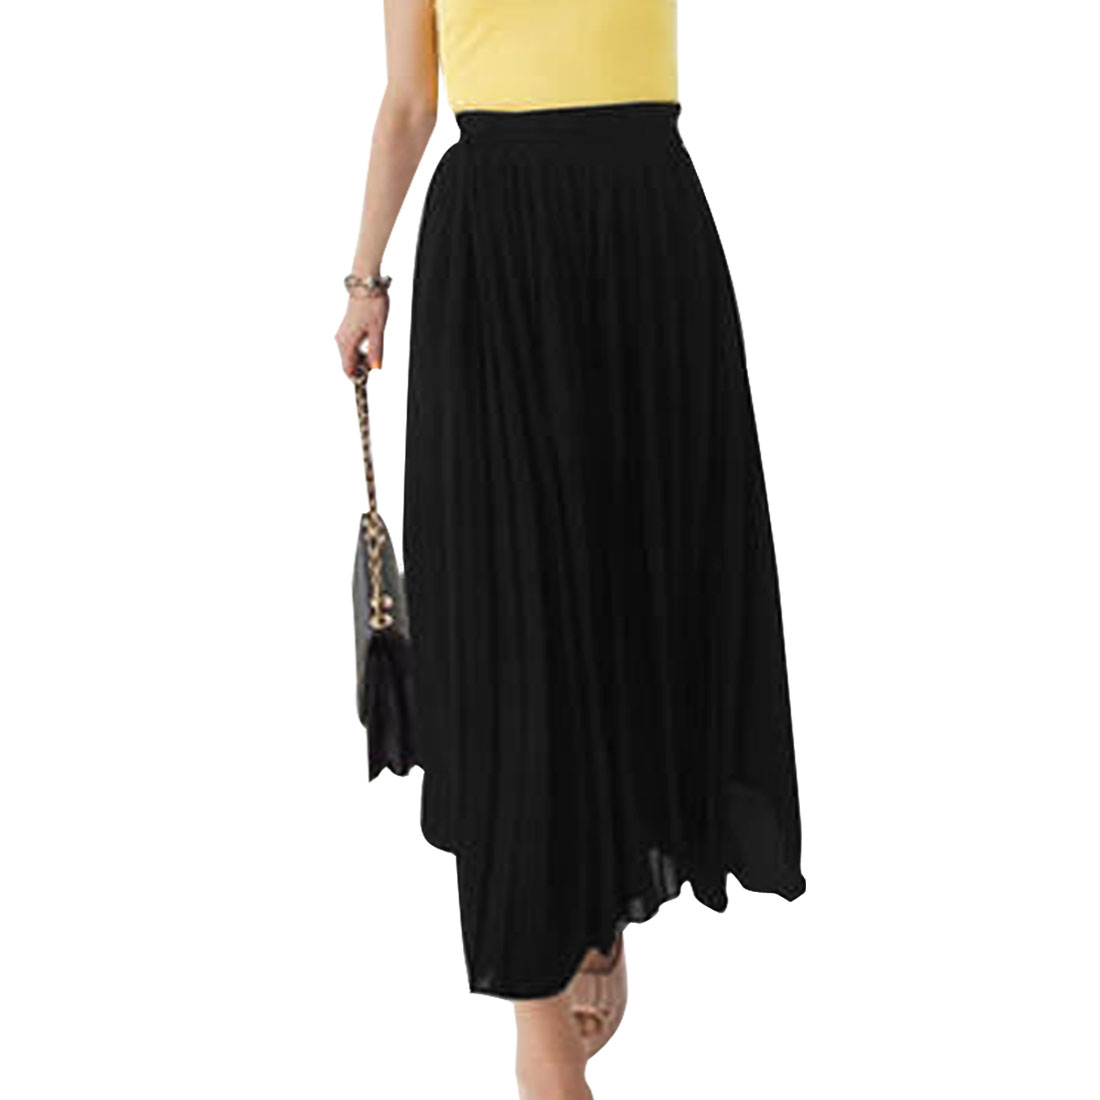 Ladies Elastic Waist Pleated Front Casual Mid-Calf Skirt Black XS